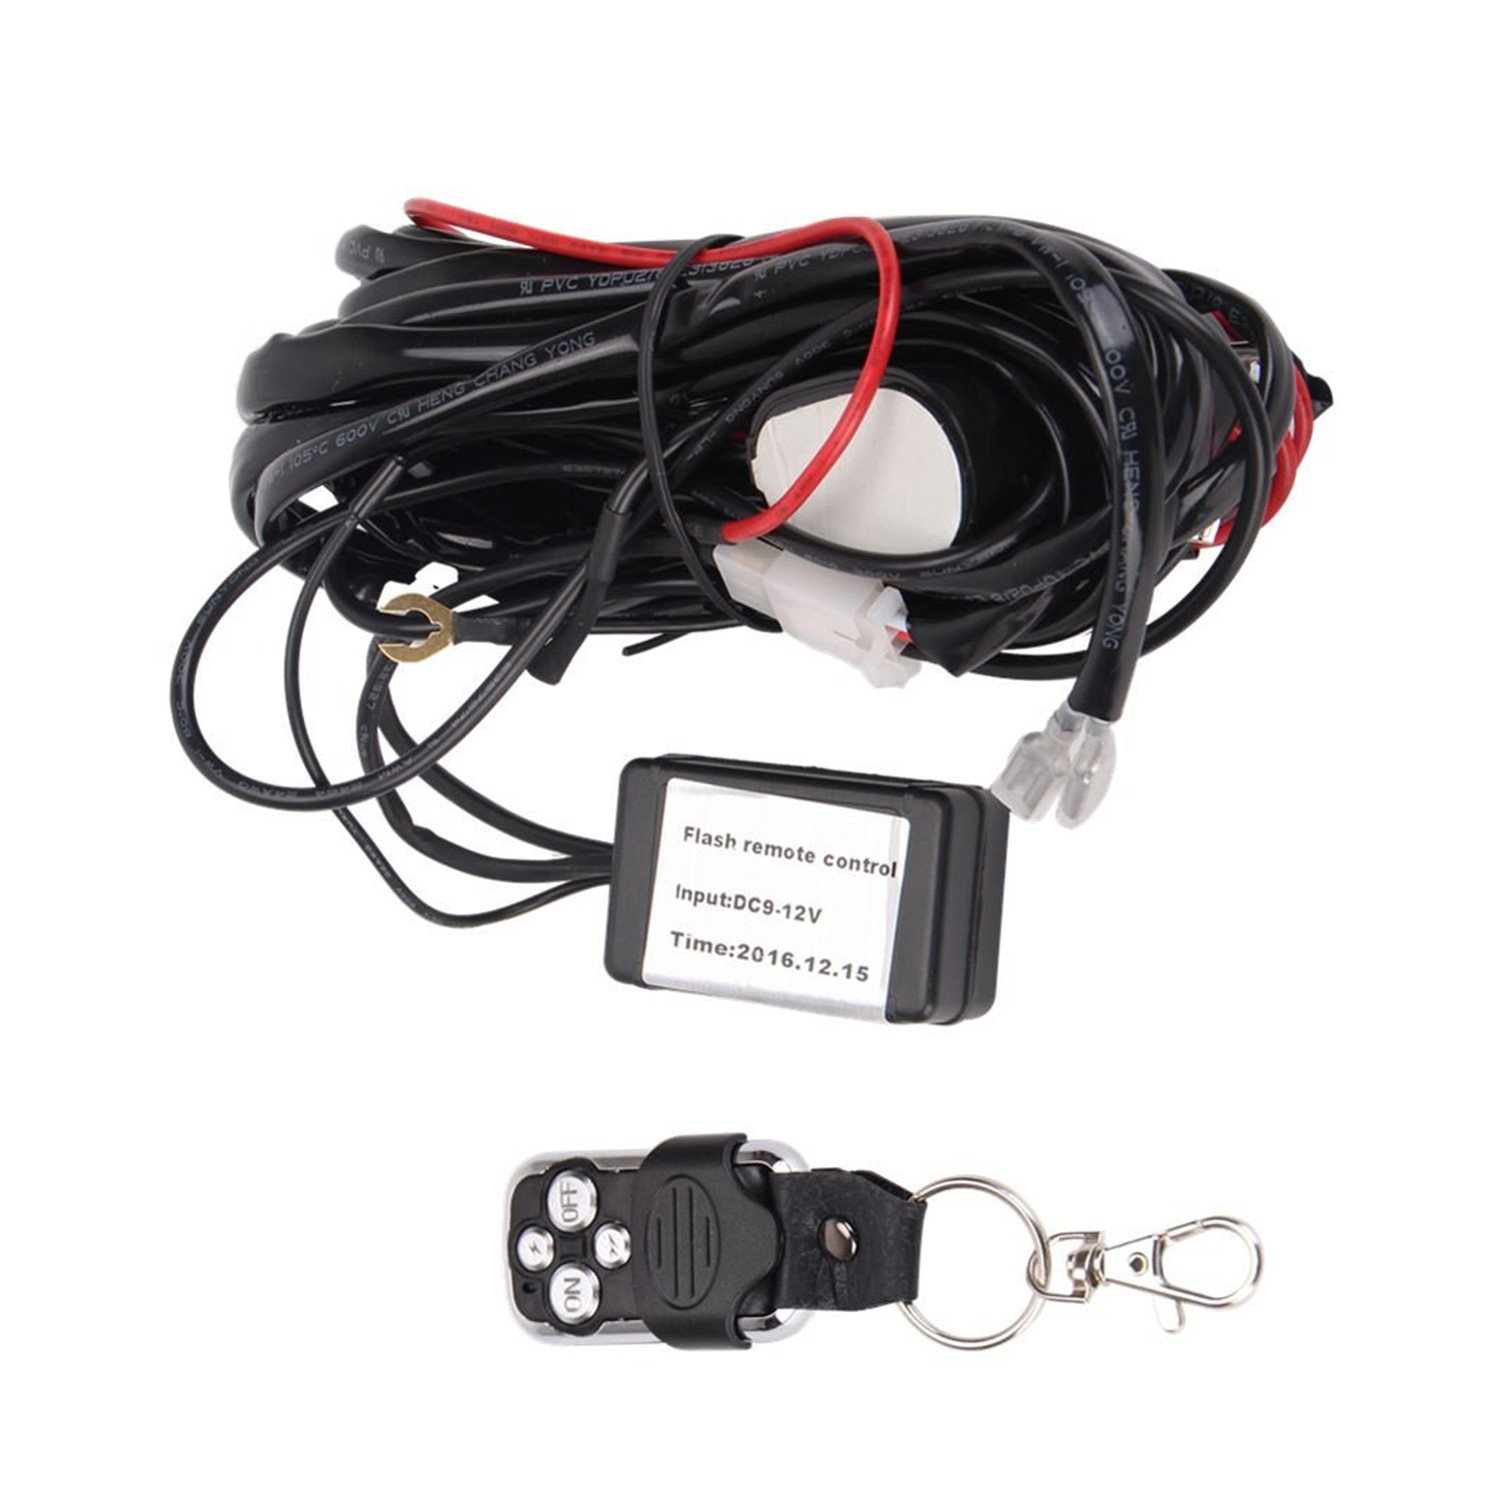 qdy remote wiring harness for led light bar with 12v 40a one line kit on/